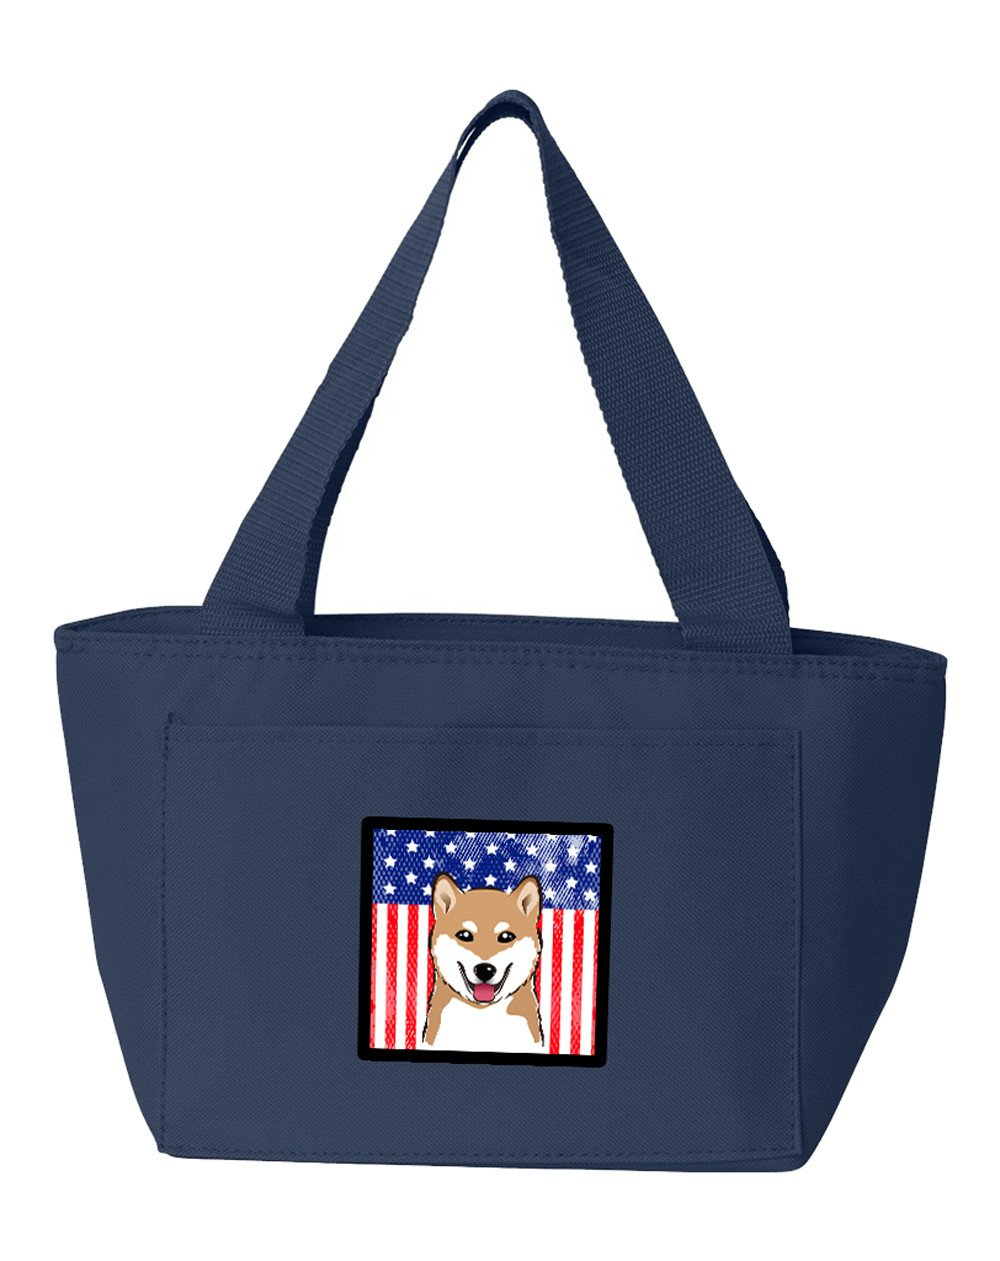 American Flag and Shiba Inu Lunch Bag BB2155NA-8808 by Caroline's Treasures